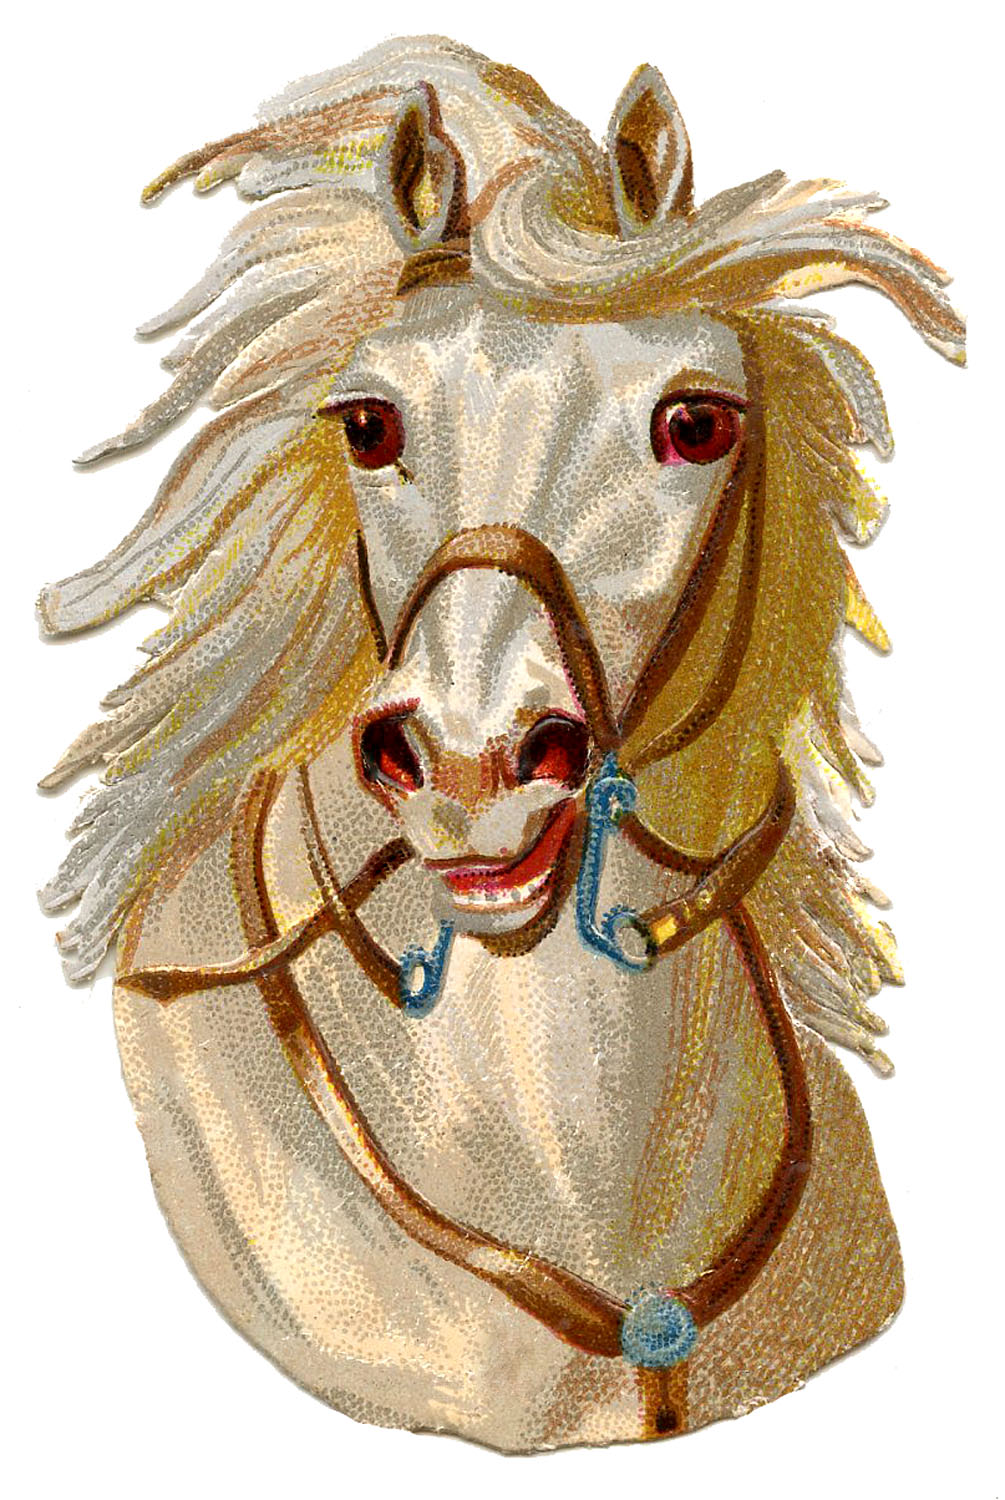 16 Horse Clip Art Images The Graphics Fairy